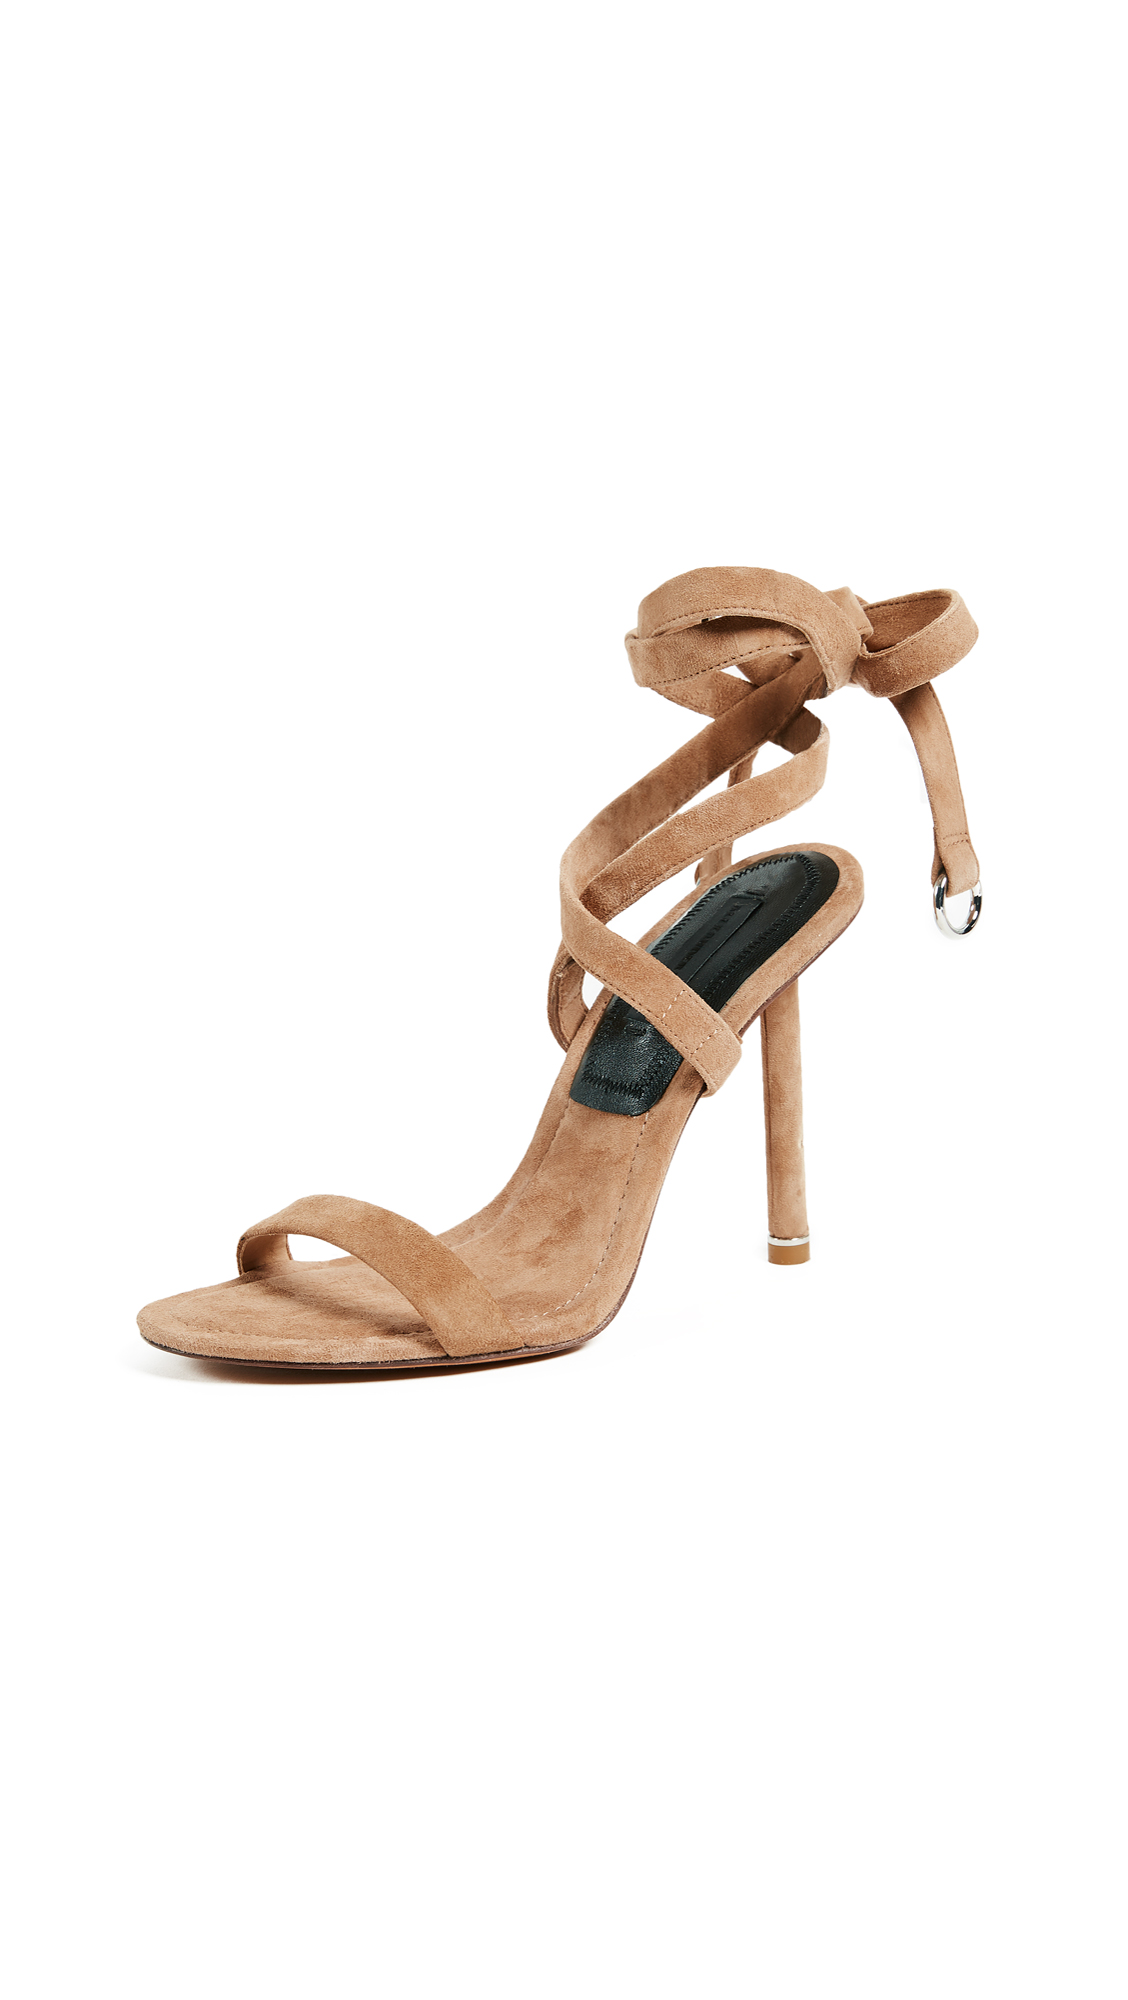 Alexander Wang Evie Wrap Sandals - Clay